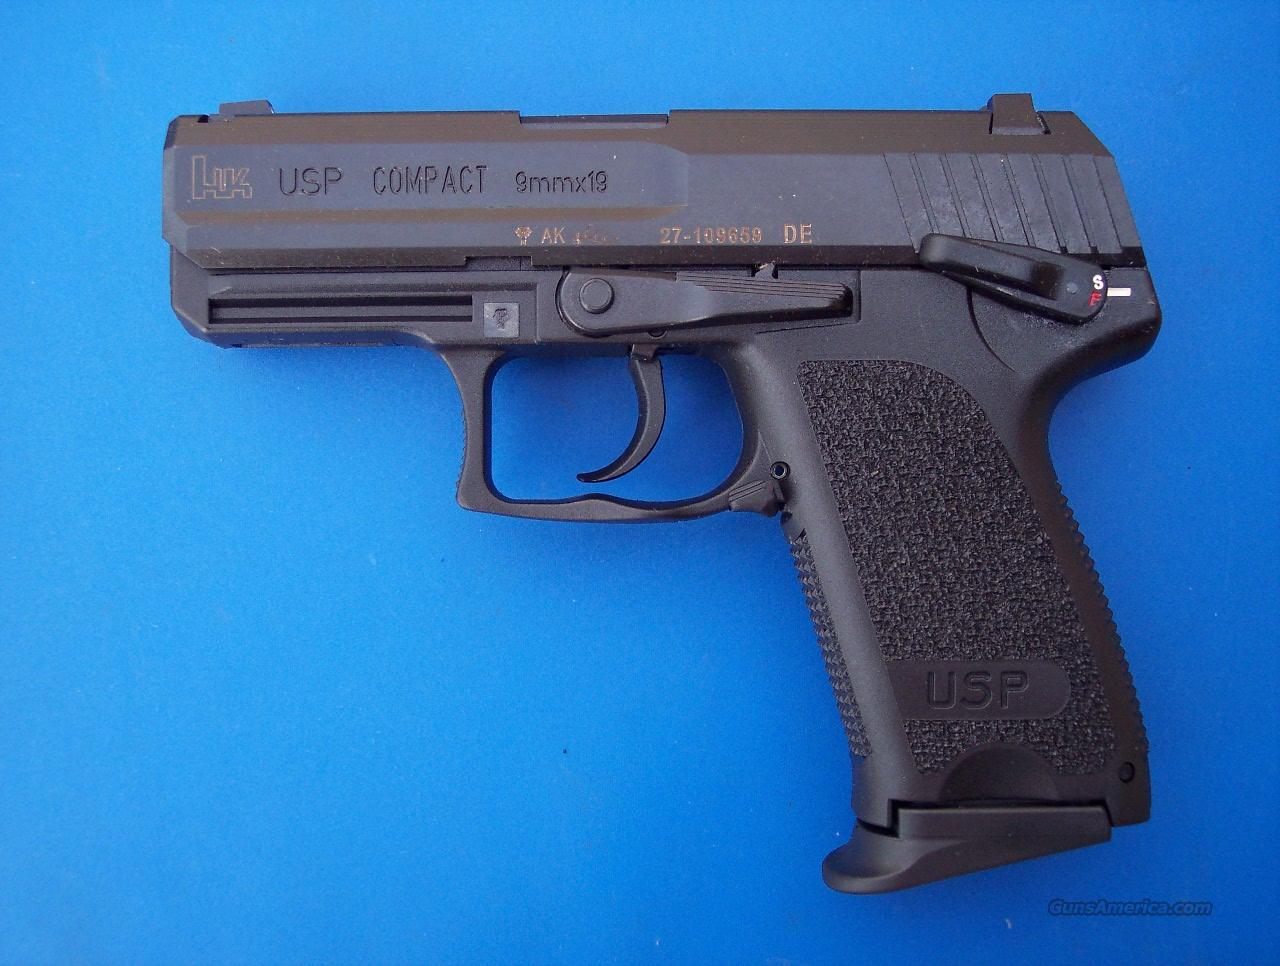 HK 9mm Heckler & Koch USP Compact 9 mm NEW 13 rd  Guns > Pistols > Heckler & Koch Pistols > Polymer Frame